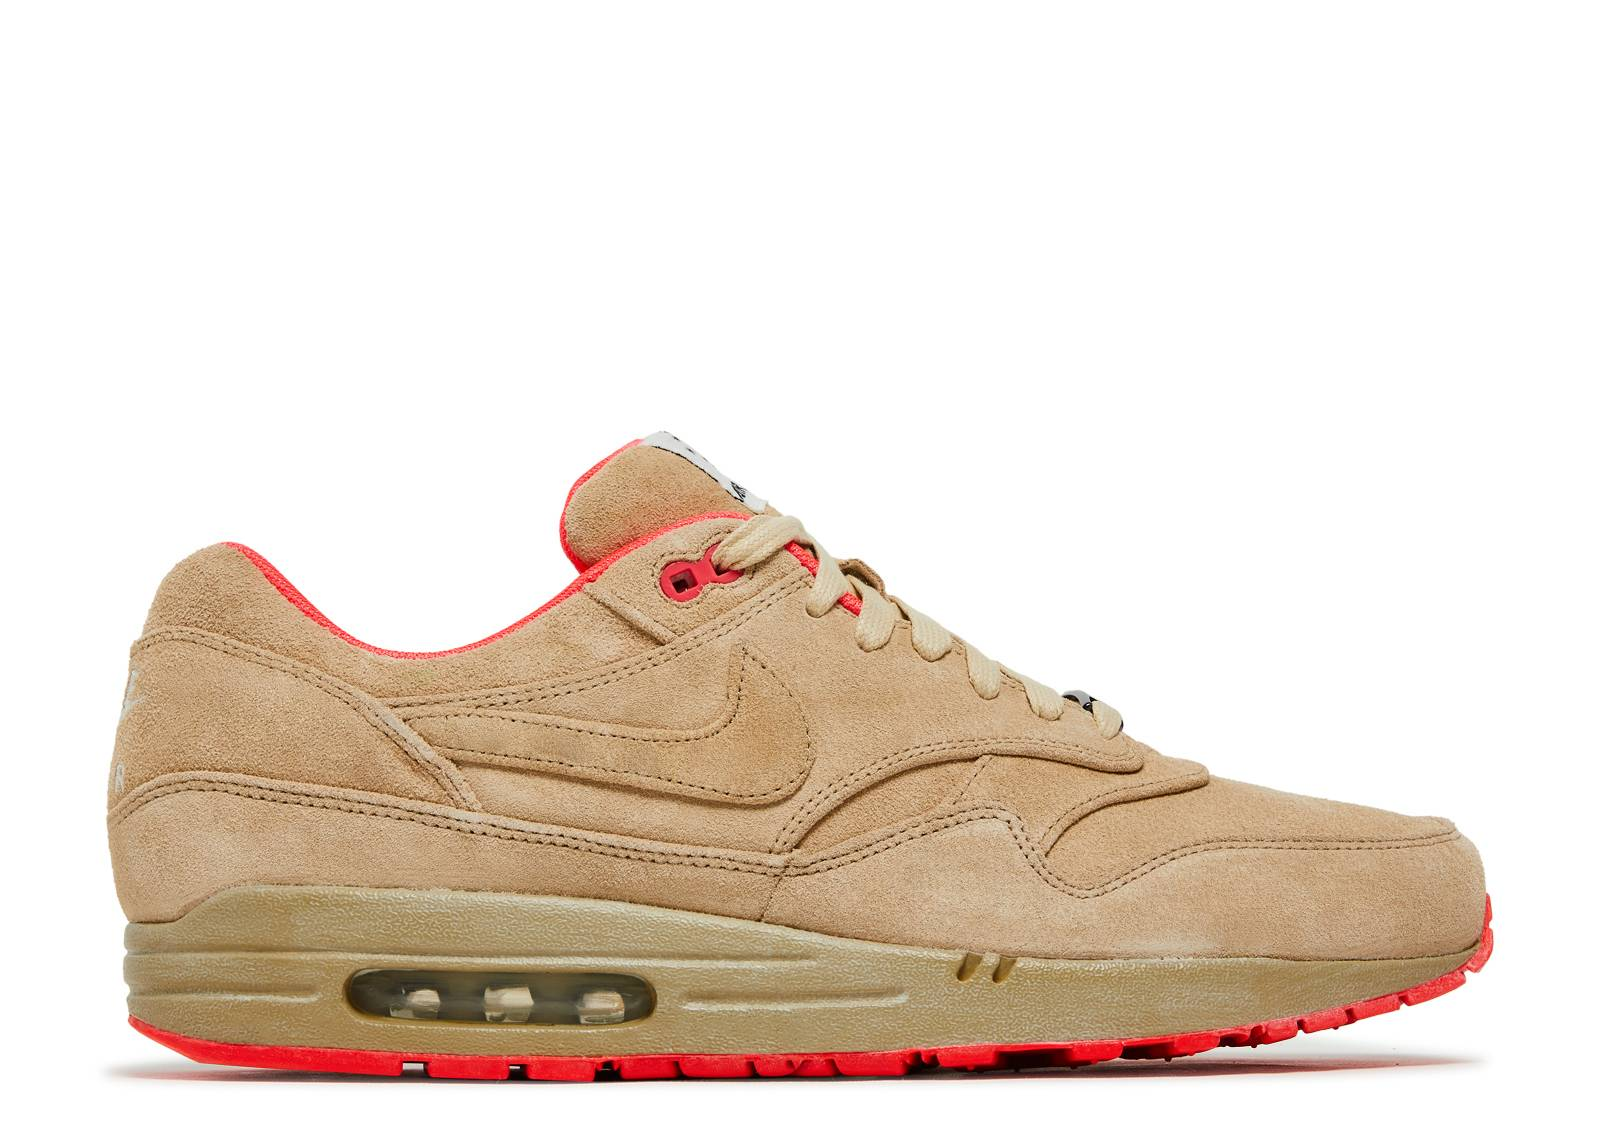 meet 667d0 d1057 Air Max 1 Milano Qs